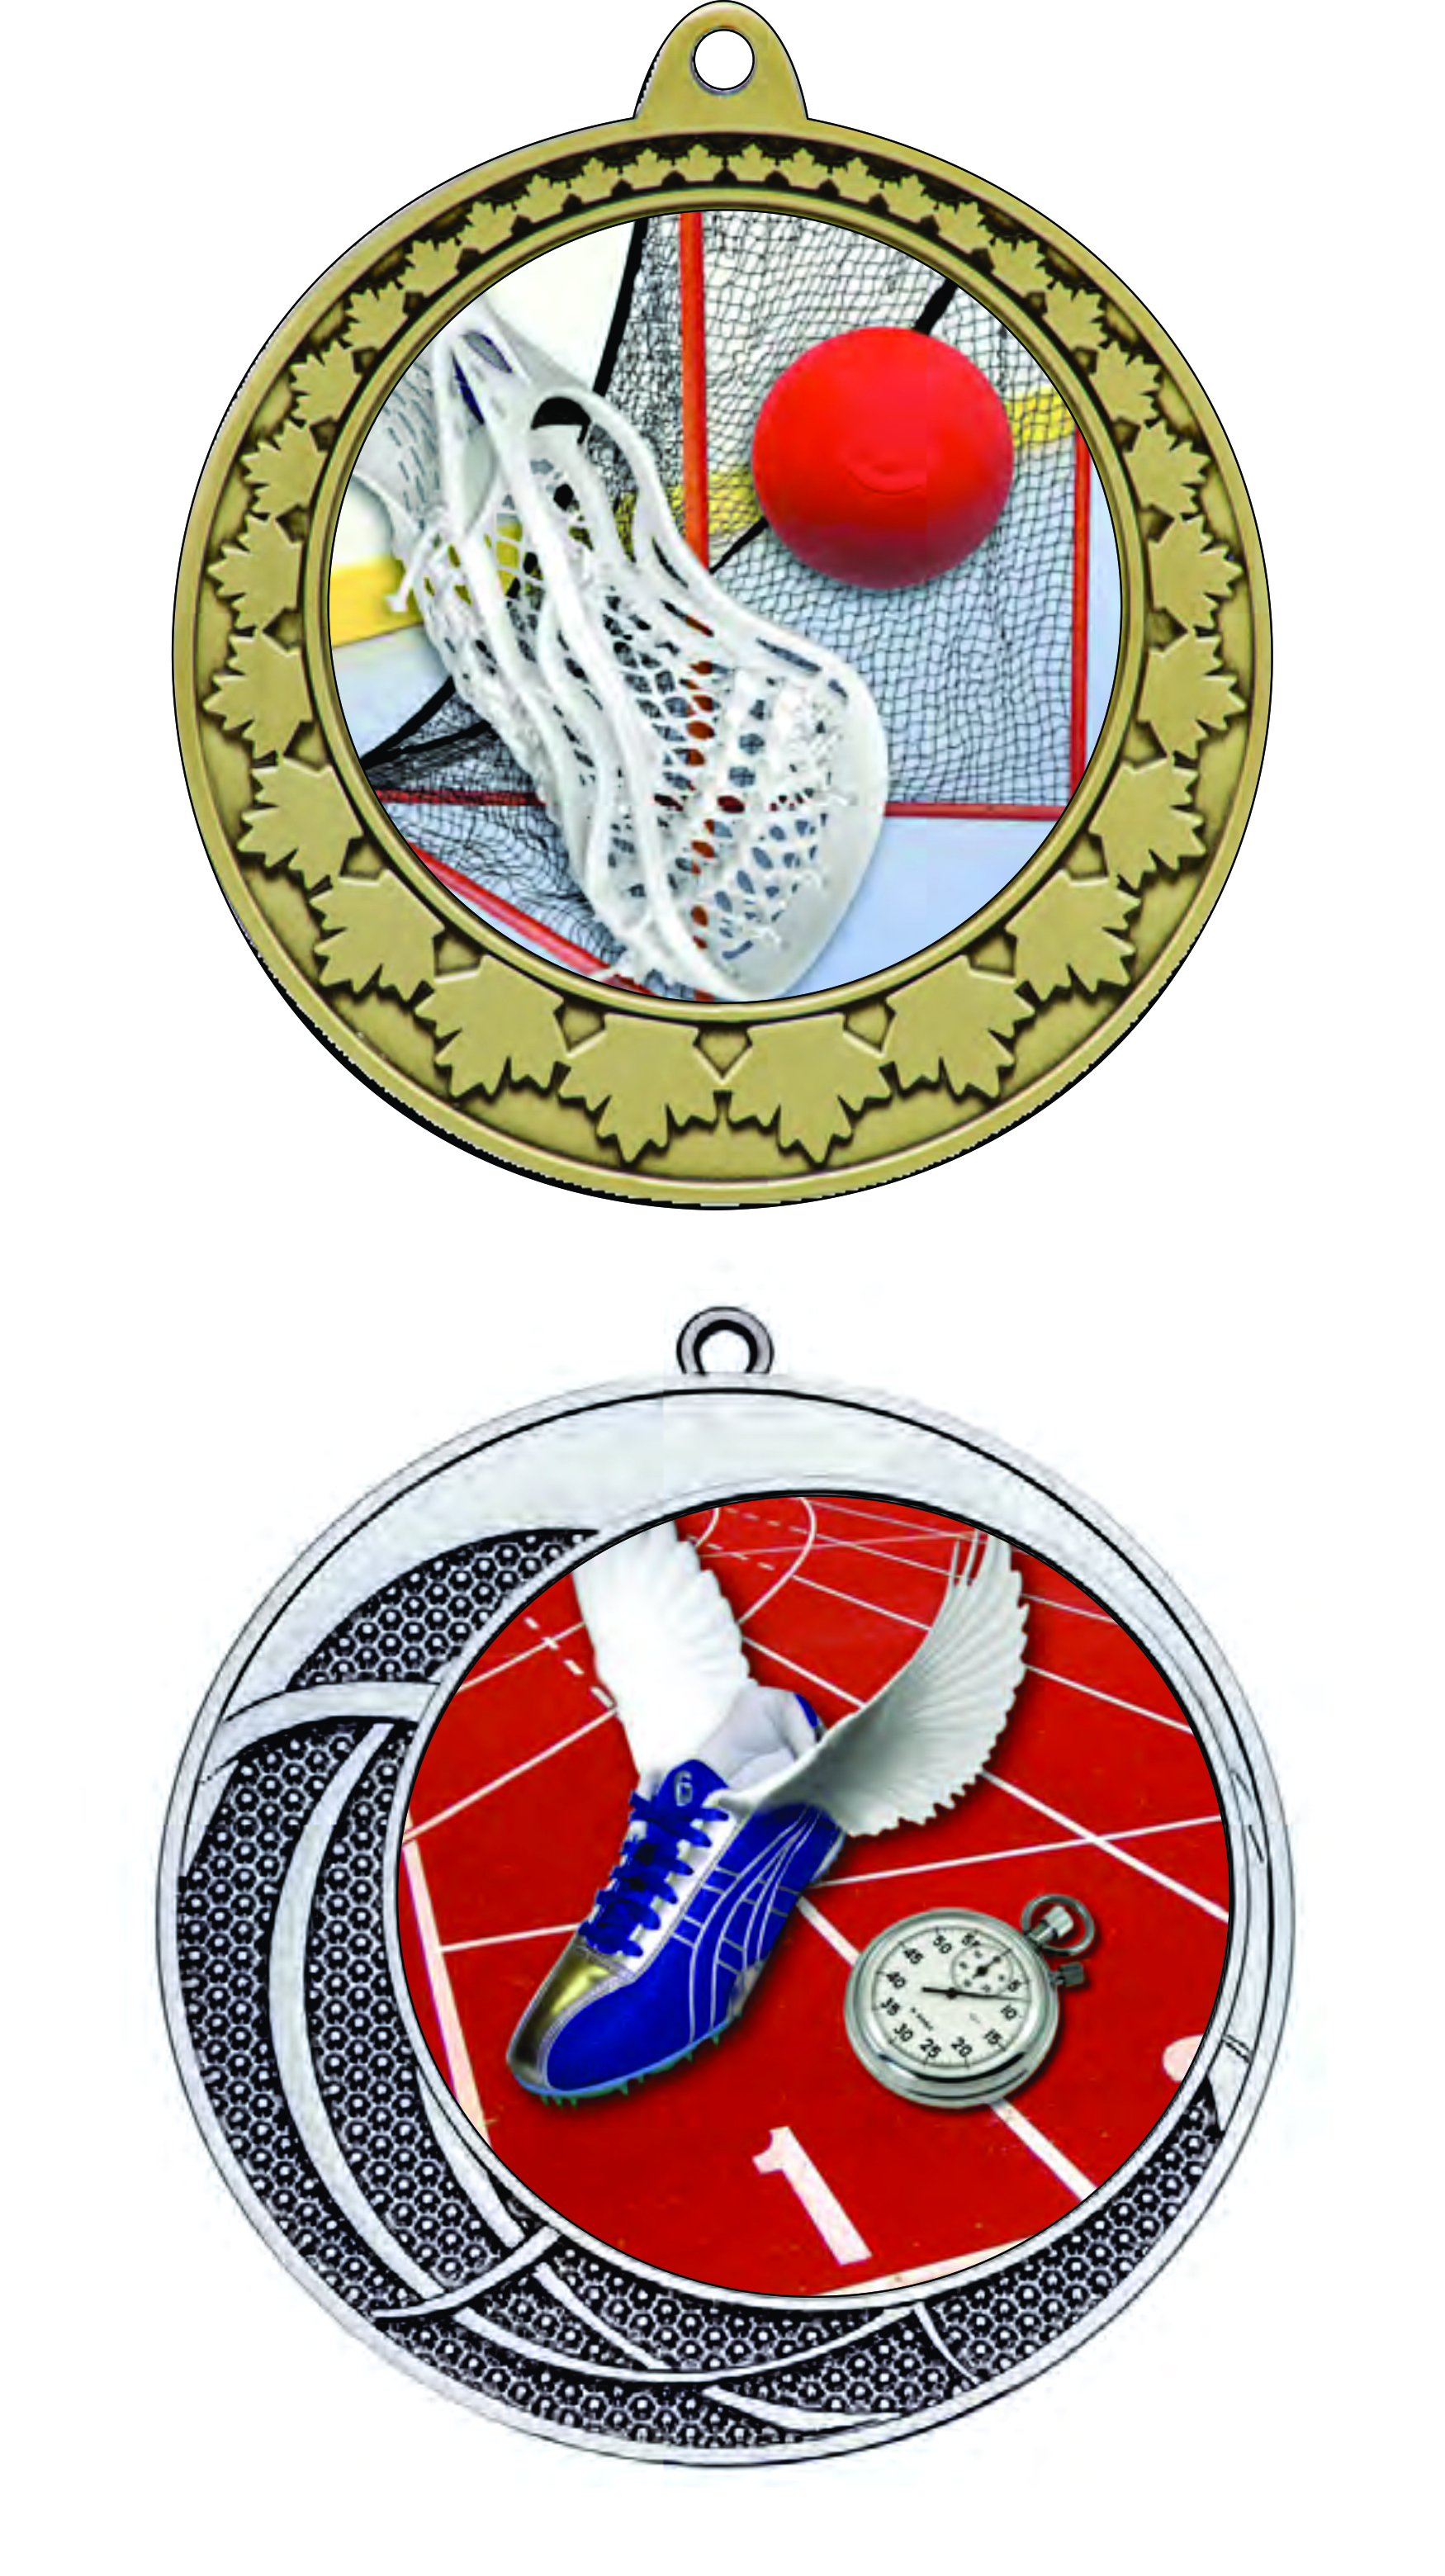 Vancouver Medals - Trophy Medallions and Medal Ribbons Supplier